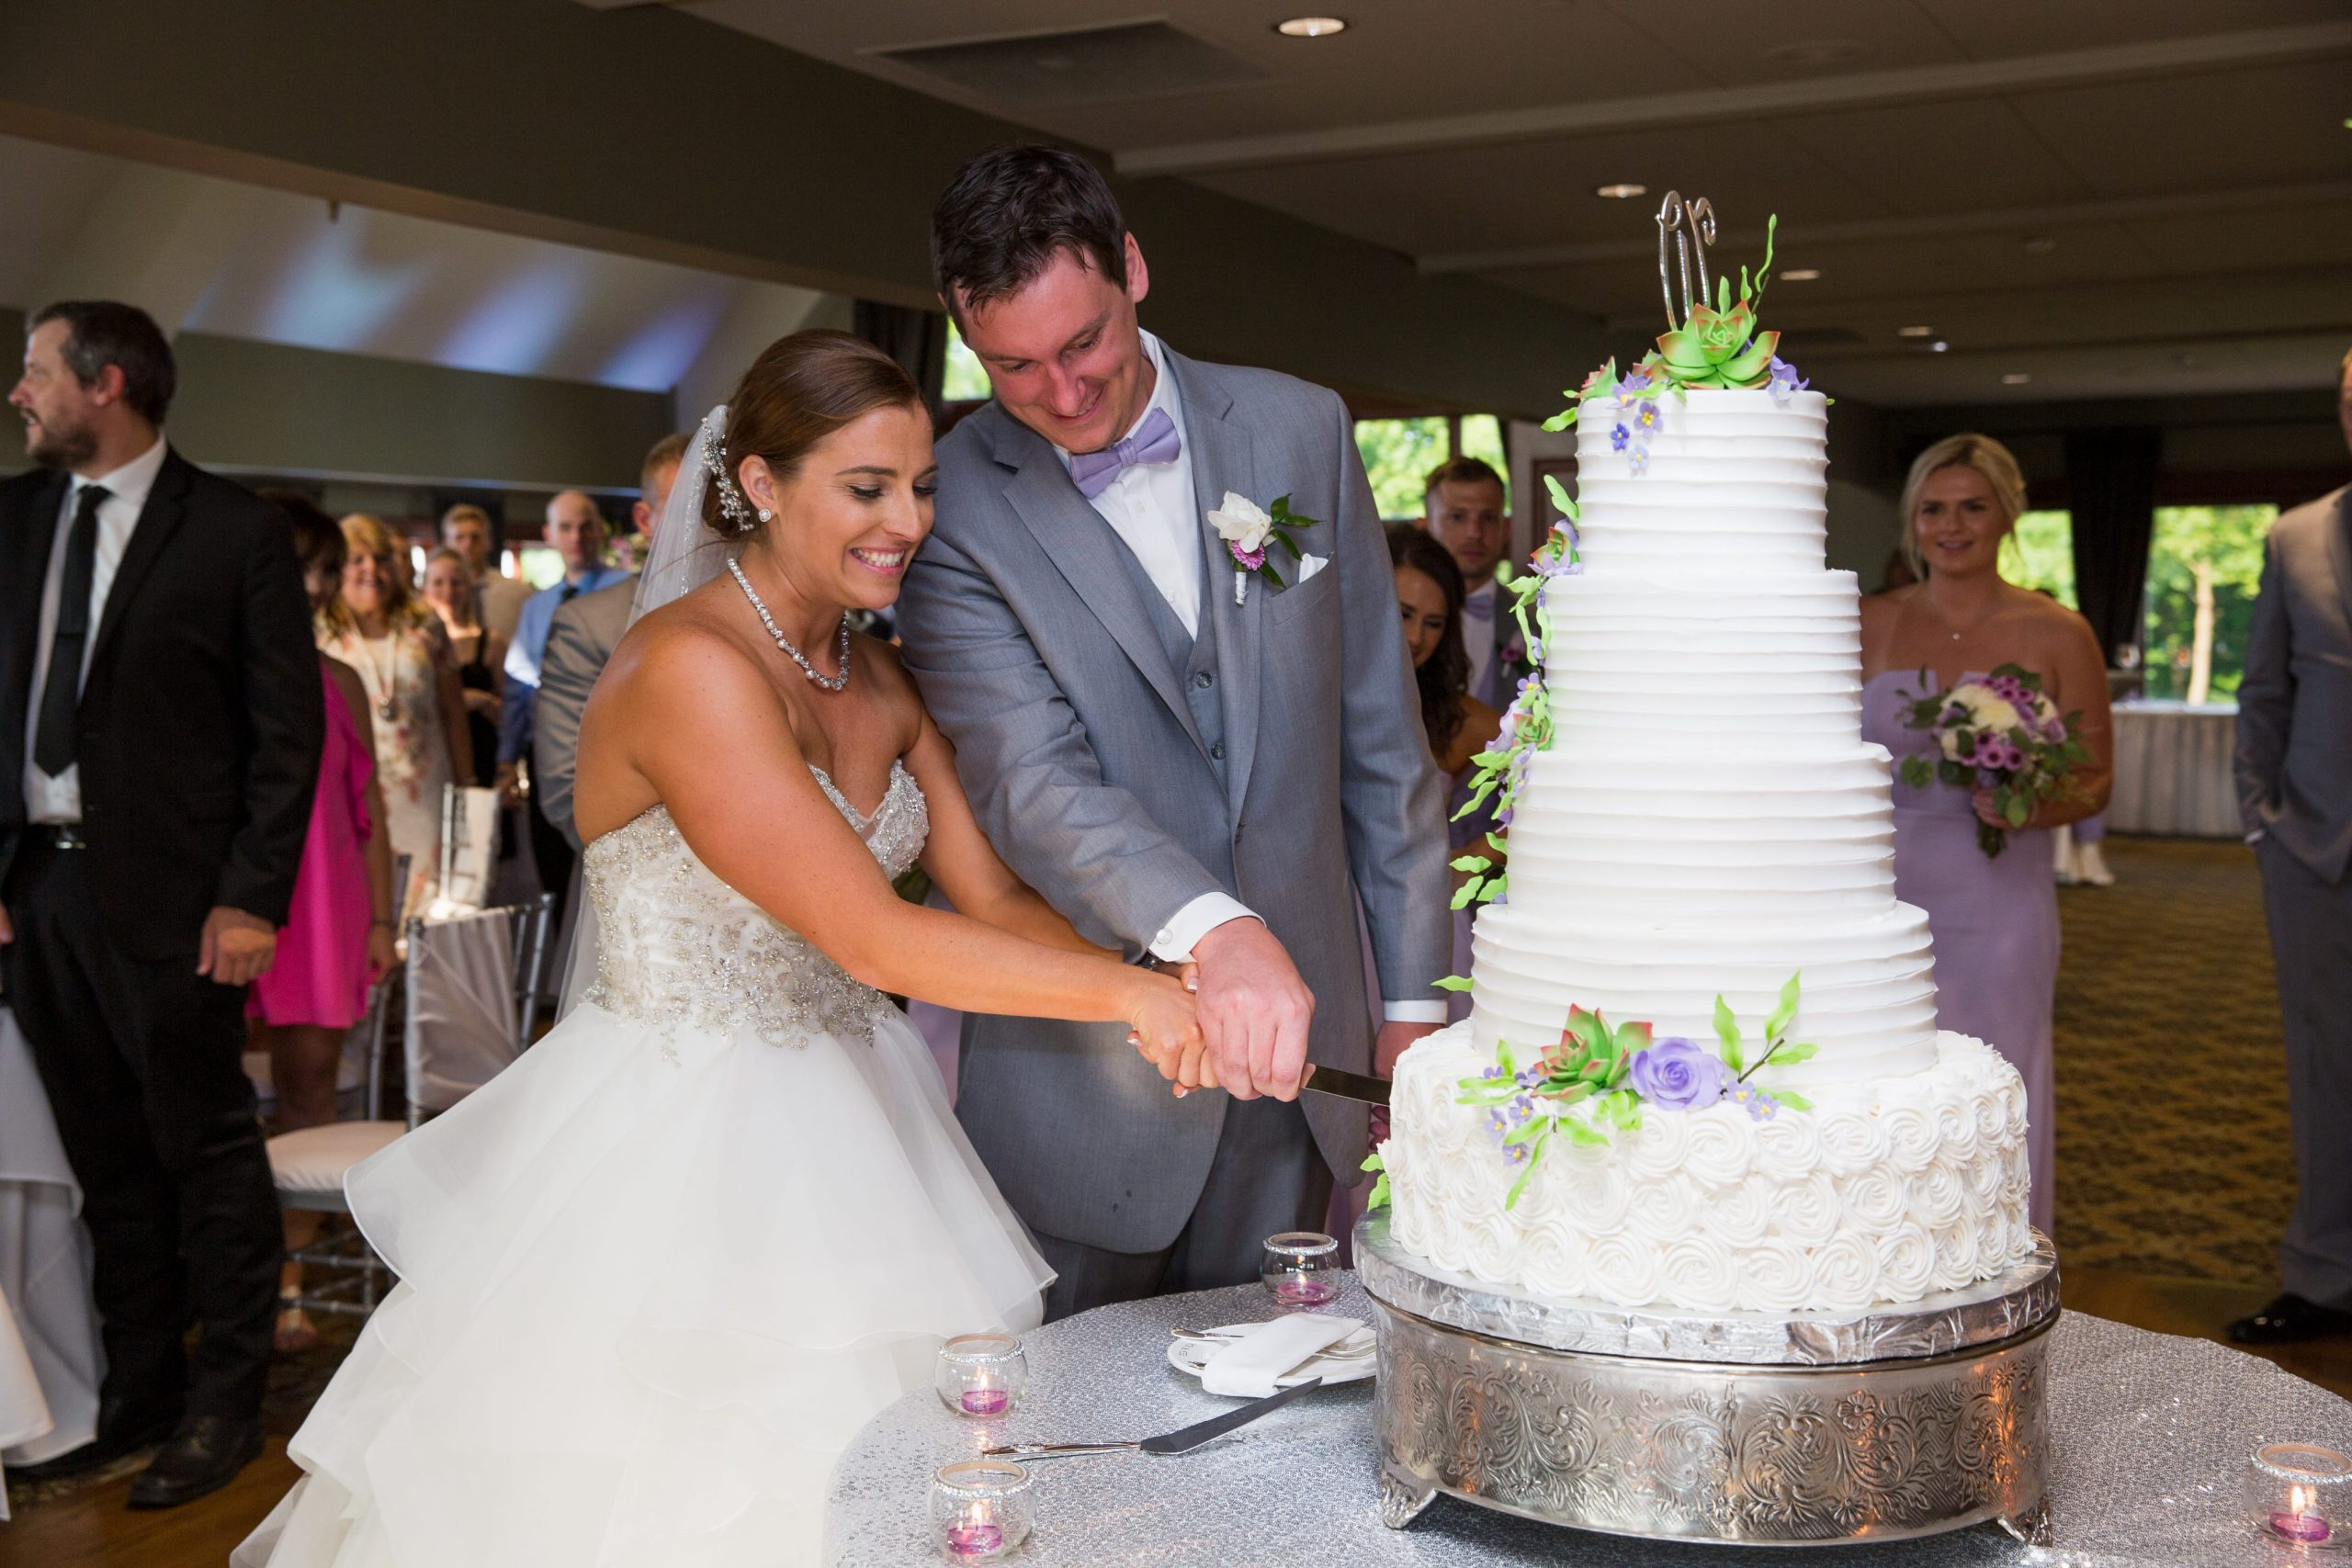 bride and groom smiling while cutting wedding cake